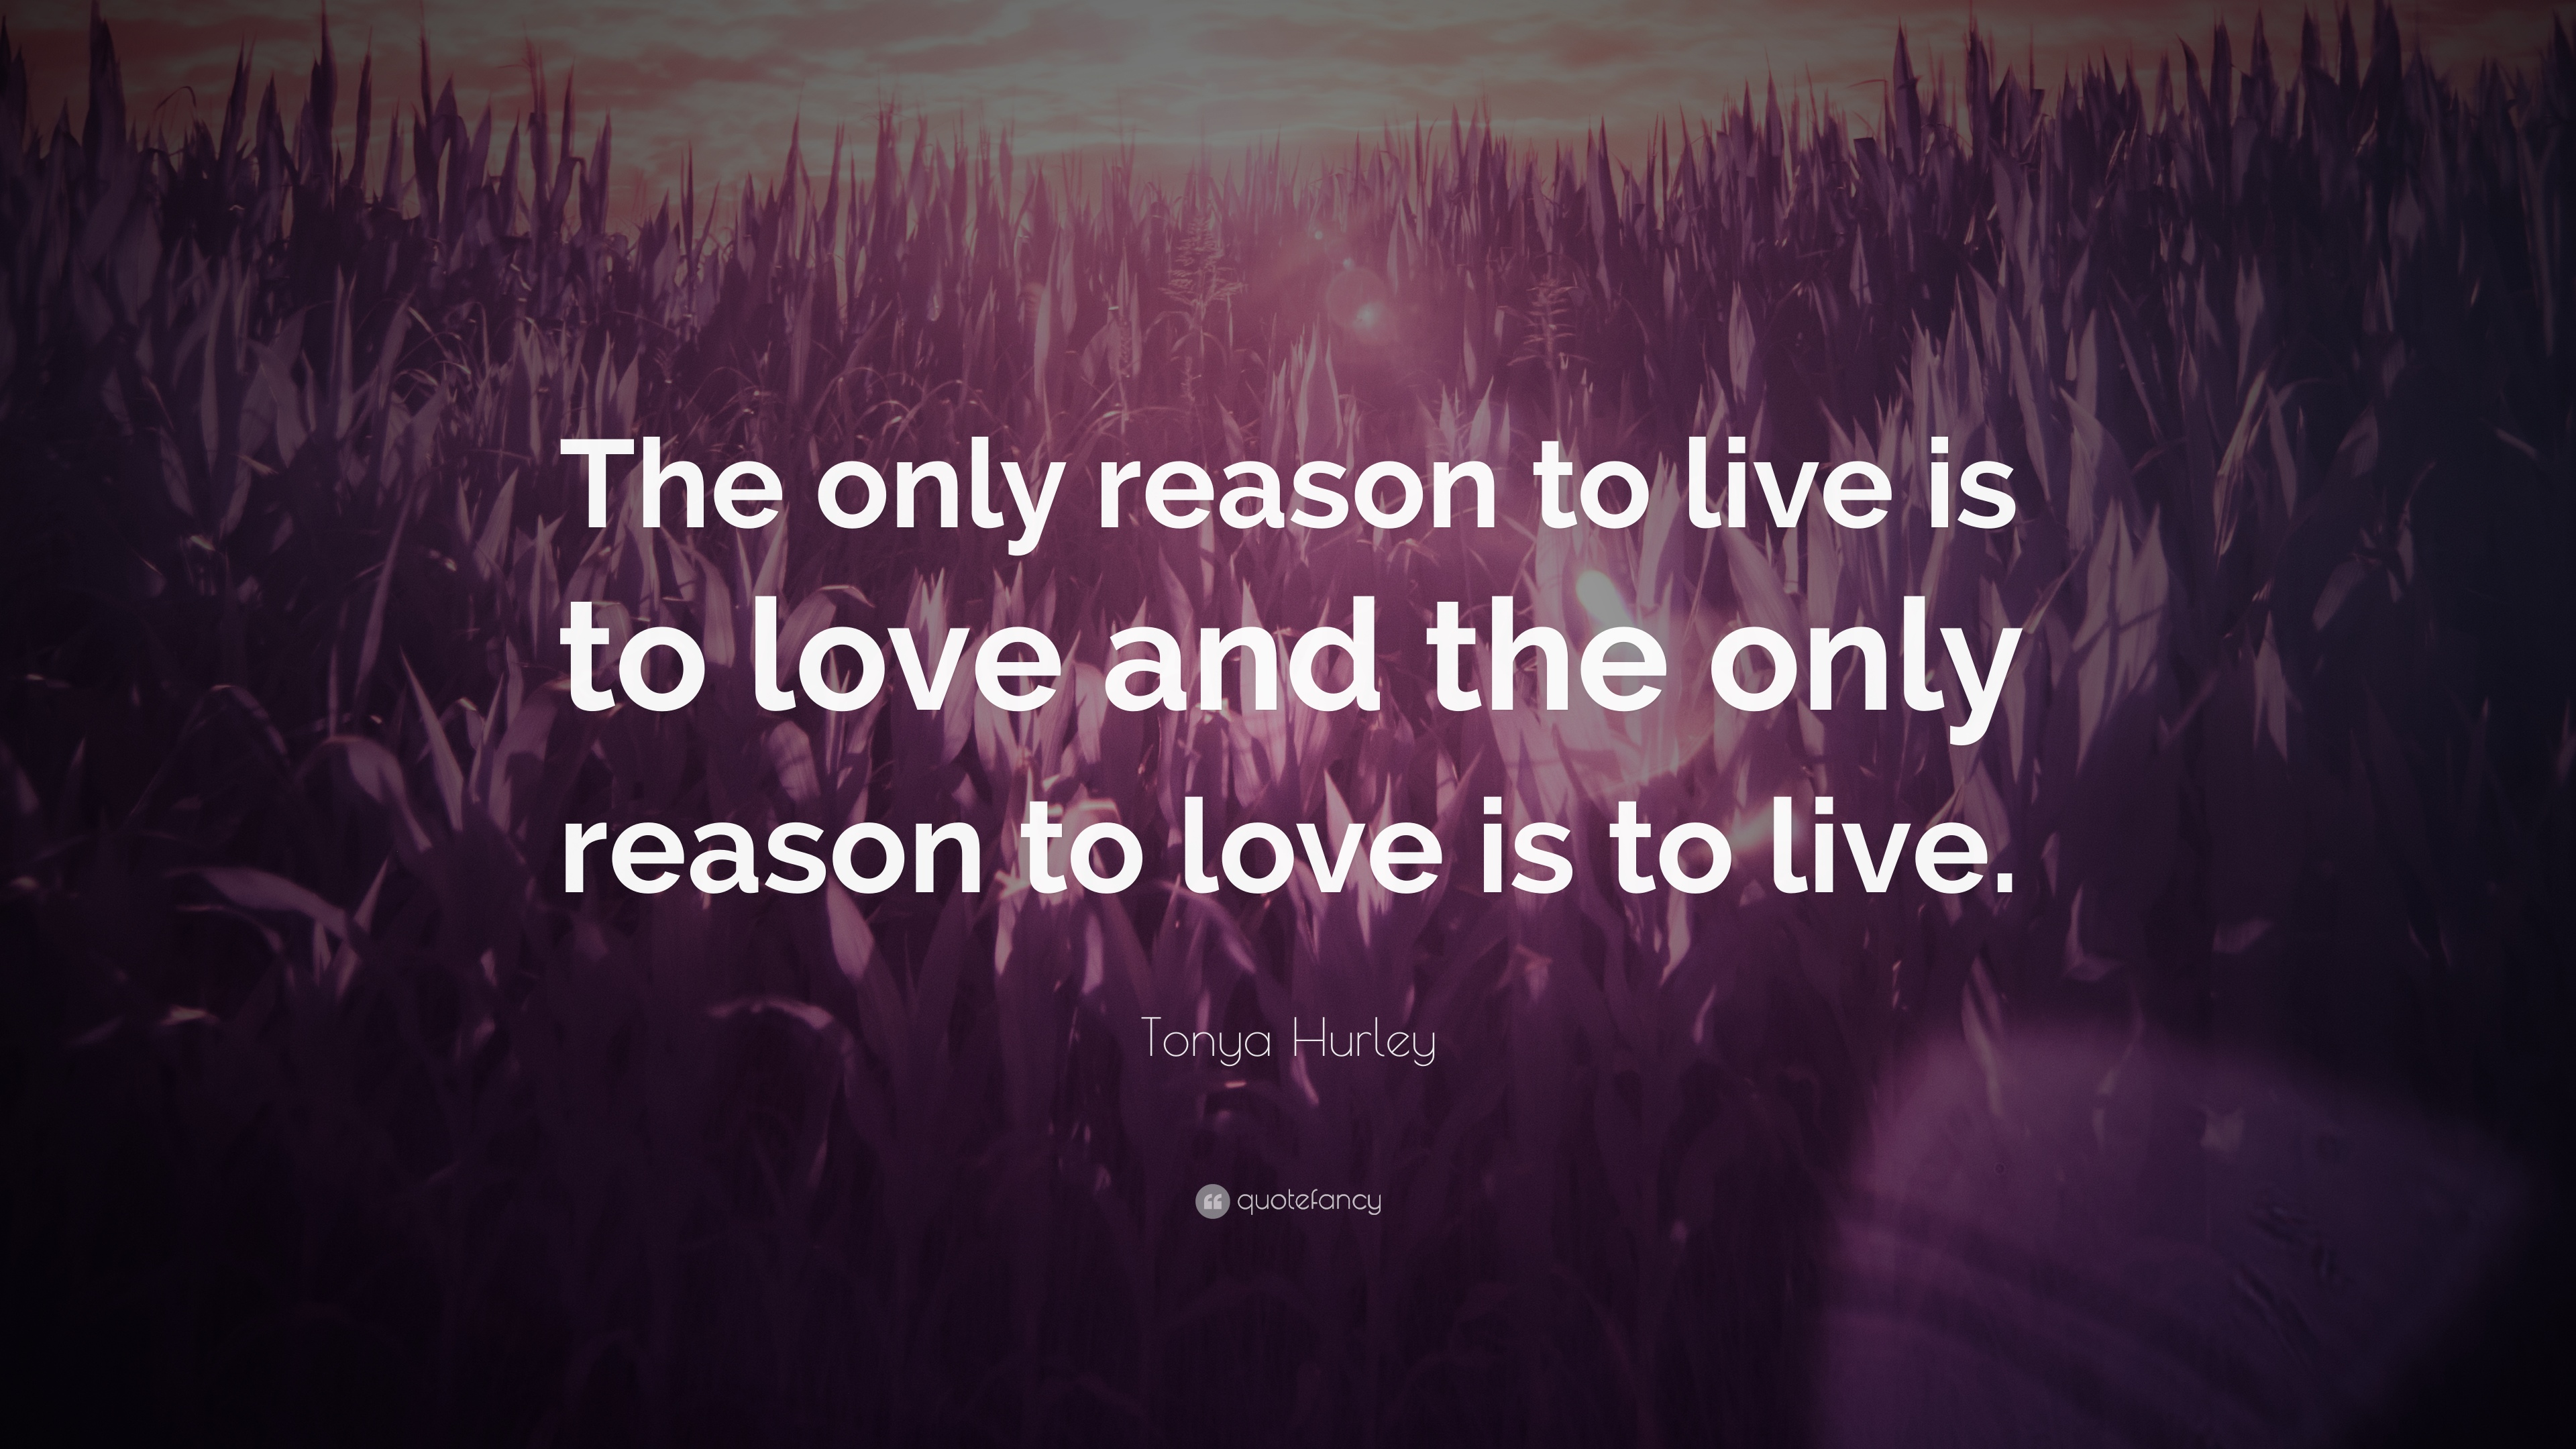 what is the reason to live